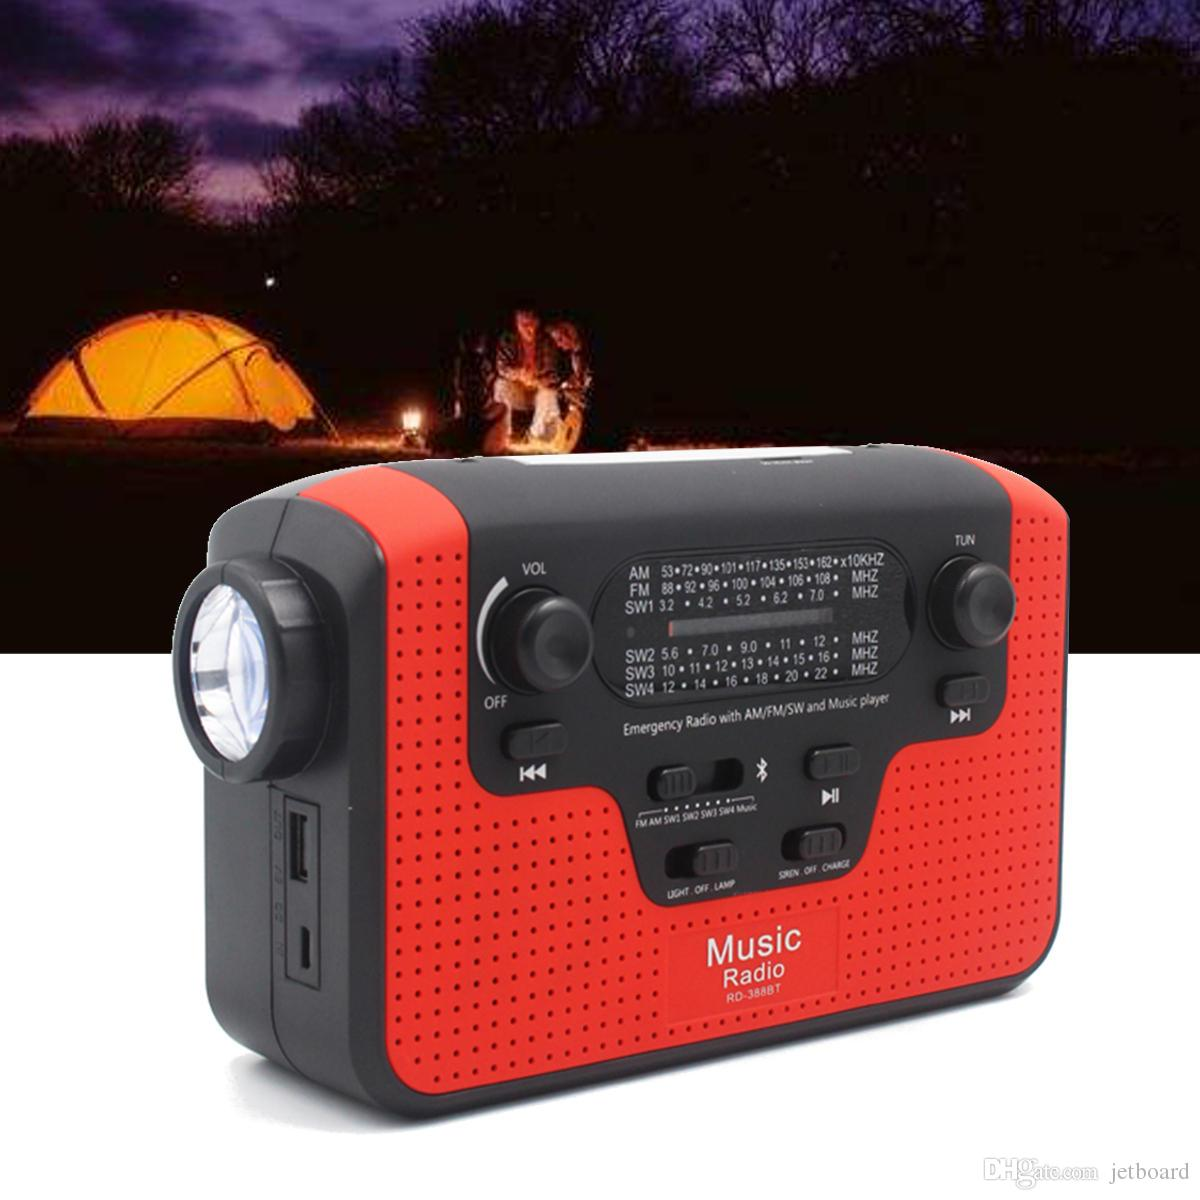 6 In 1 Hand Crank Emergency Charger Light FM/AM/SW Radio Bluetooth Speaker with TF Card Slot